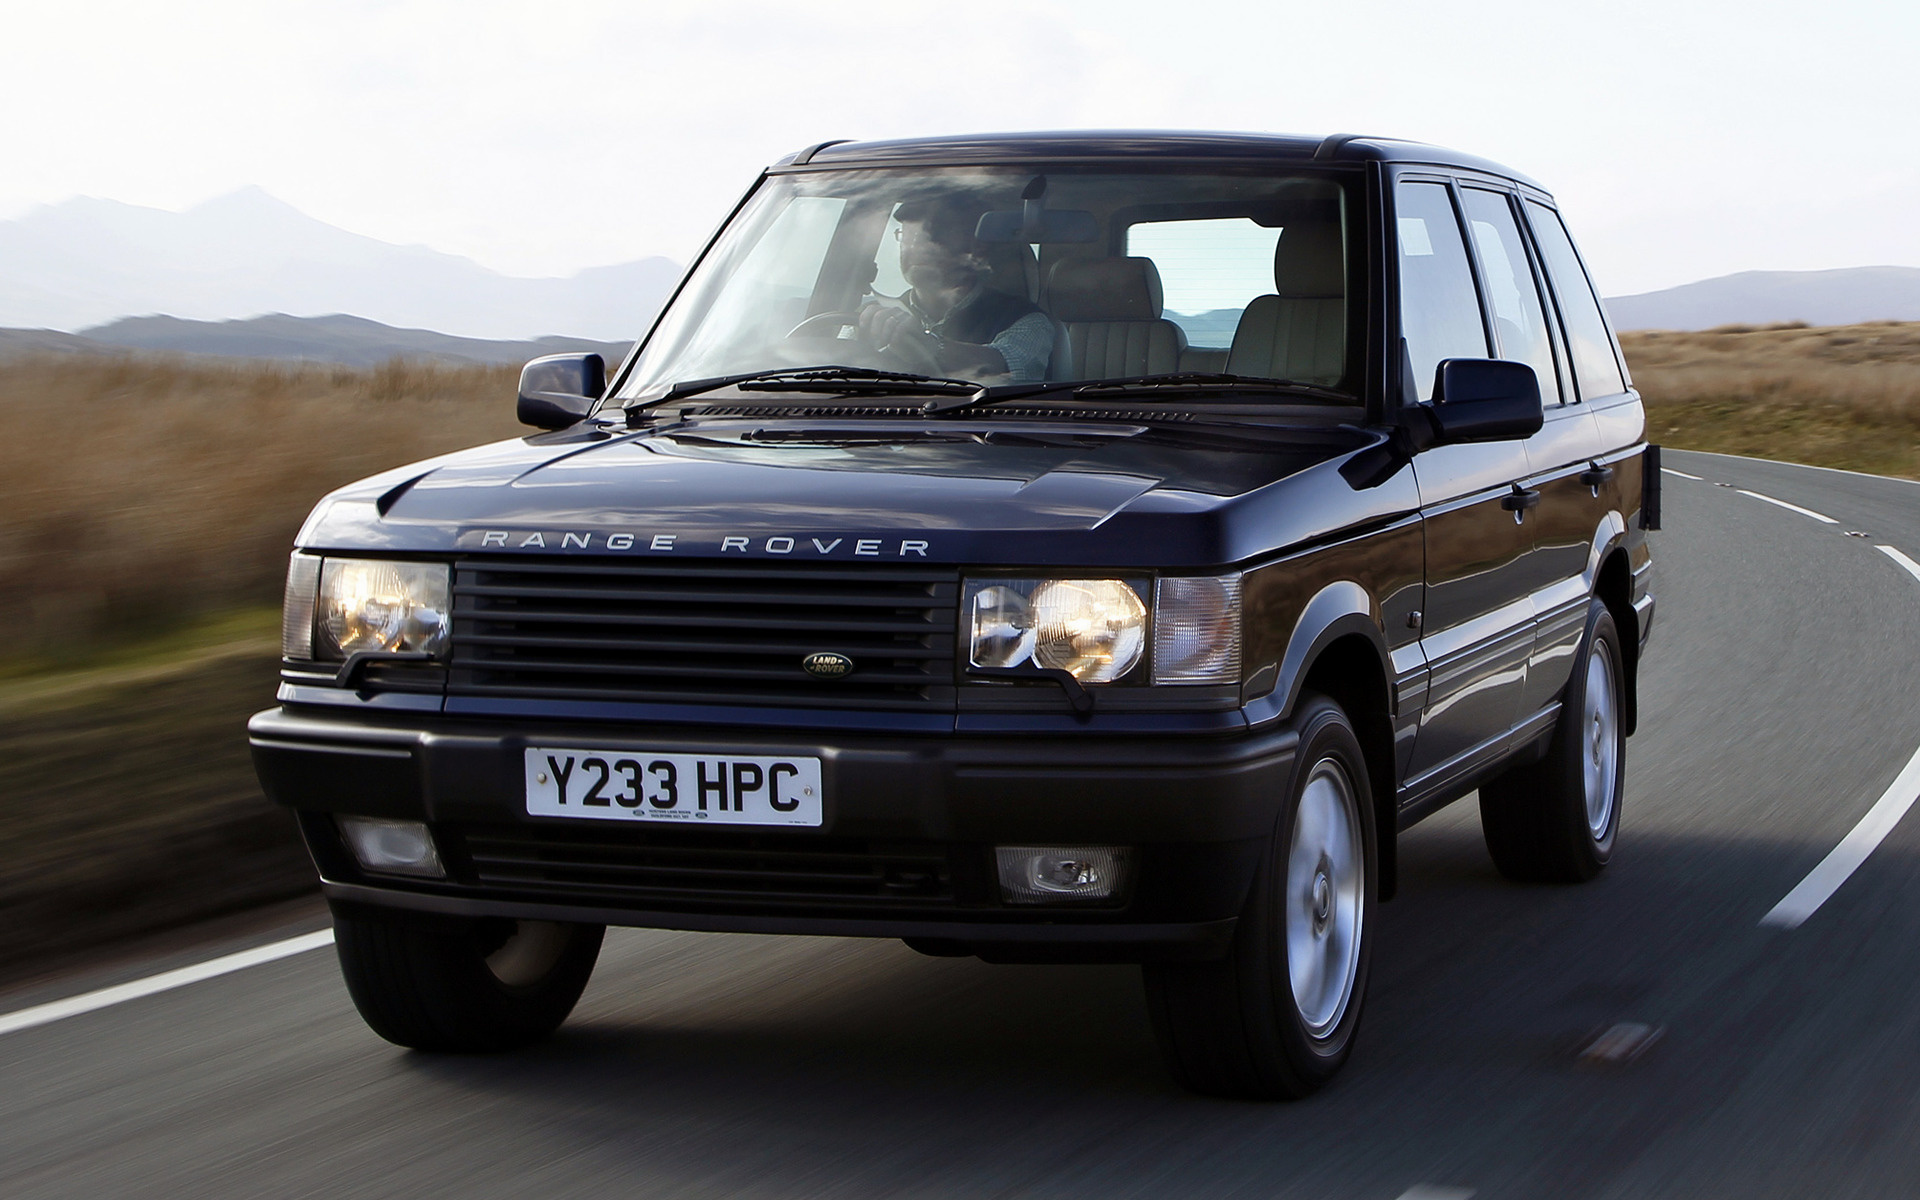 Range Rover Vogue 1994 UK Wallpapers and HD Car Pixel